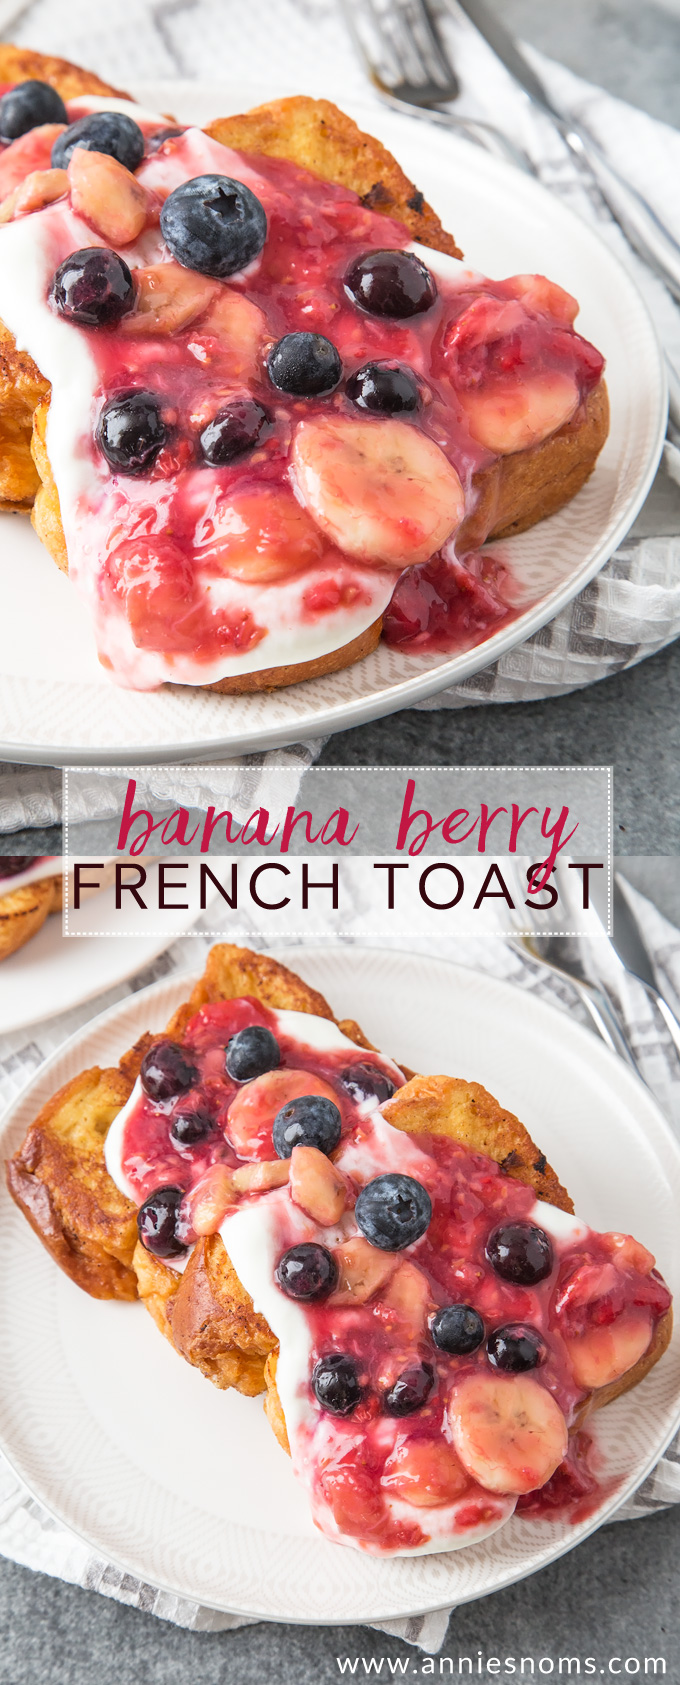 Golden French Toast is topped with a beautiful Banana Berry mixture that takes this breakfast to another level.